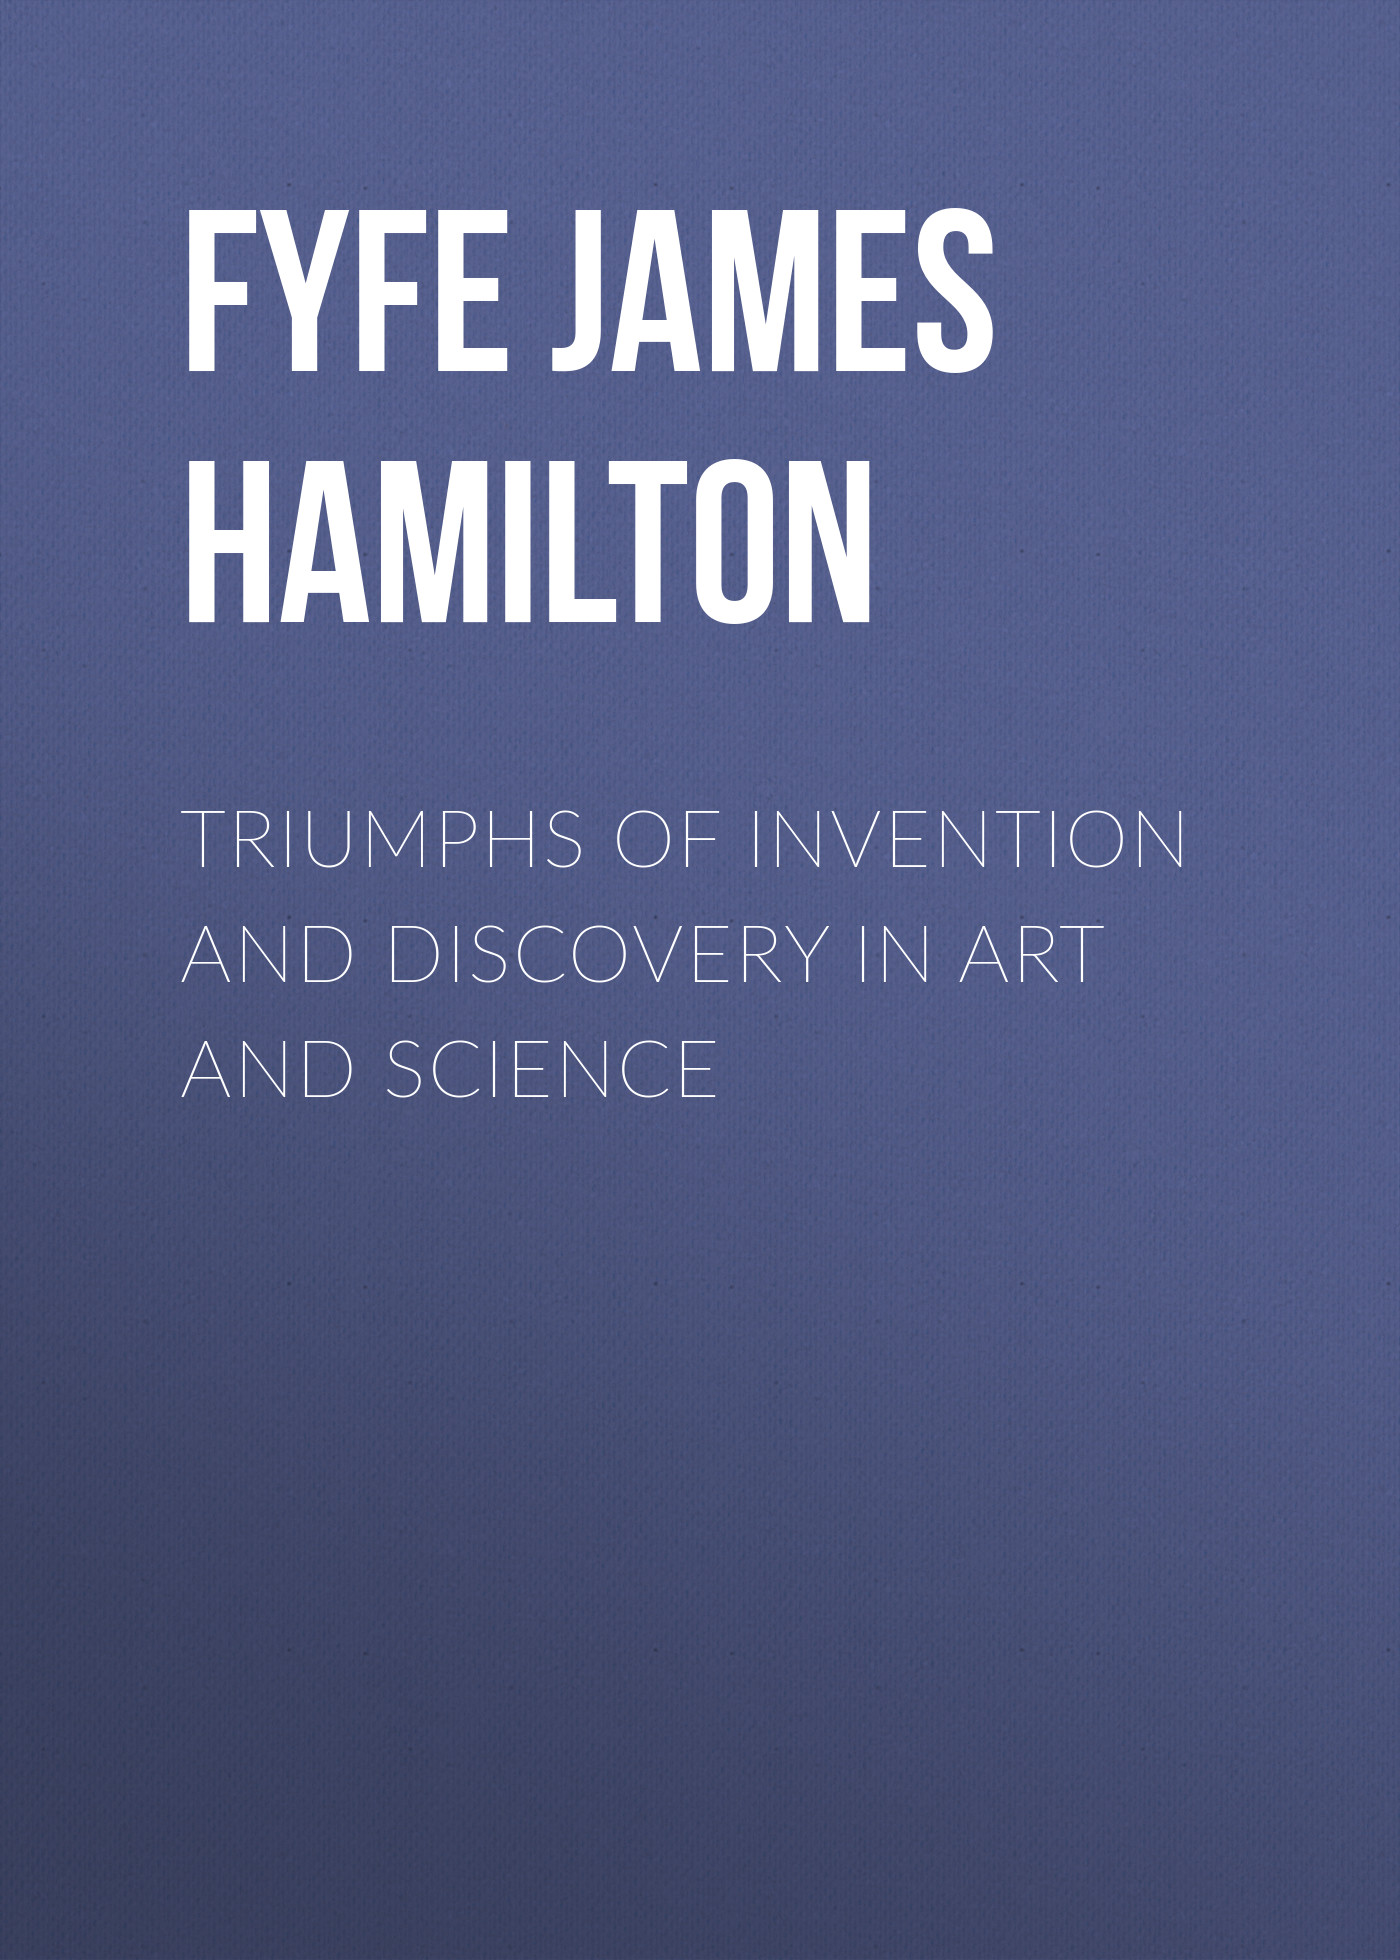 Fyfe James Hamilton Triumphs of Invention and Discovery in Art and Science